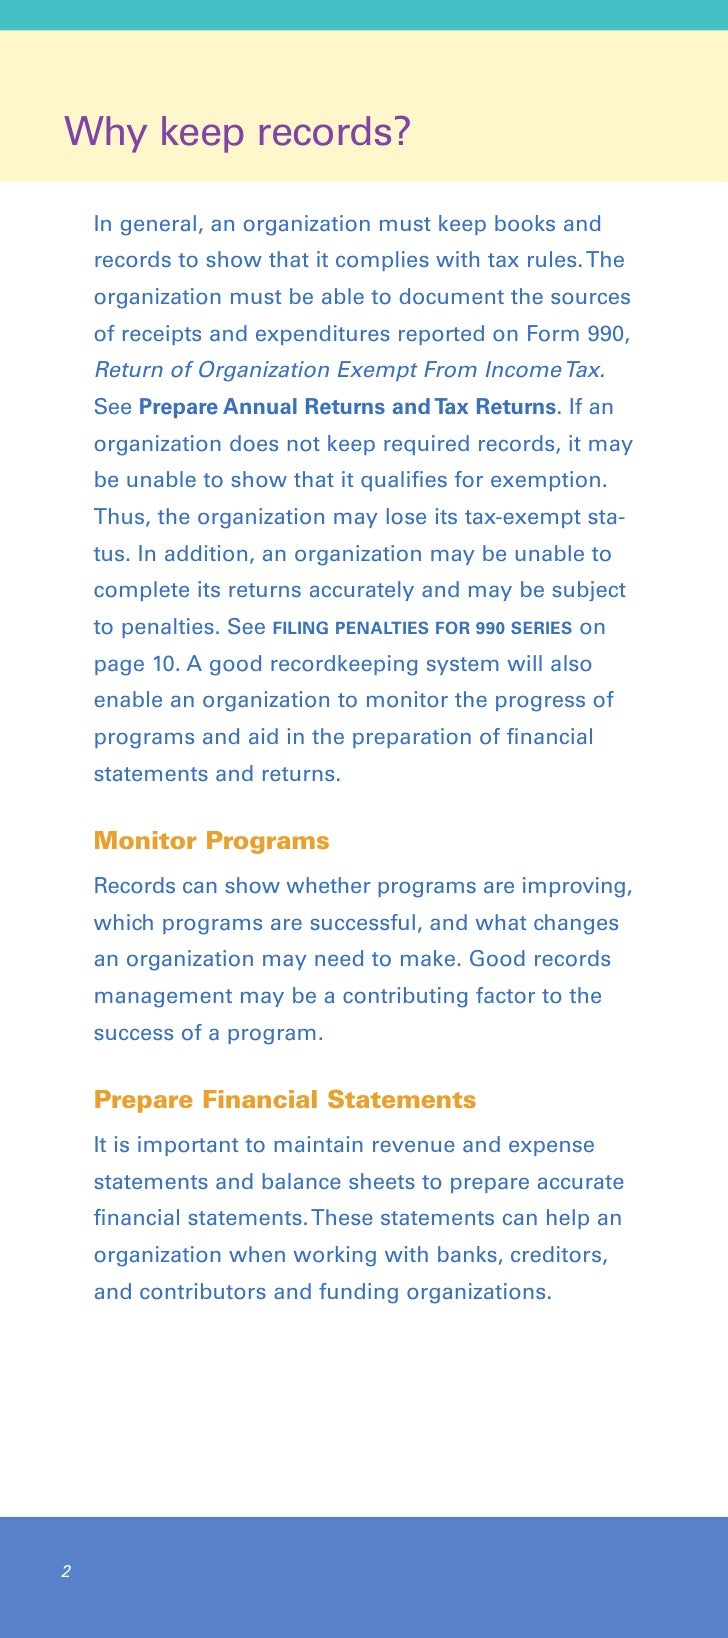 why are accurate financial statements important In the corporate setting, publishing accurate financial statements has an occupational impact various personnel must work collaboratively to help a company show its best image, financially speaking in essence, reporting financial data calls not only for analytical dexterity but also communication discipline and clarity of thought.